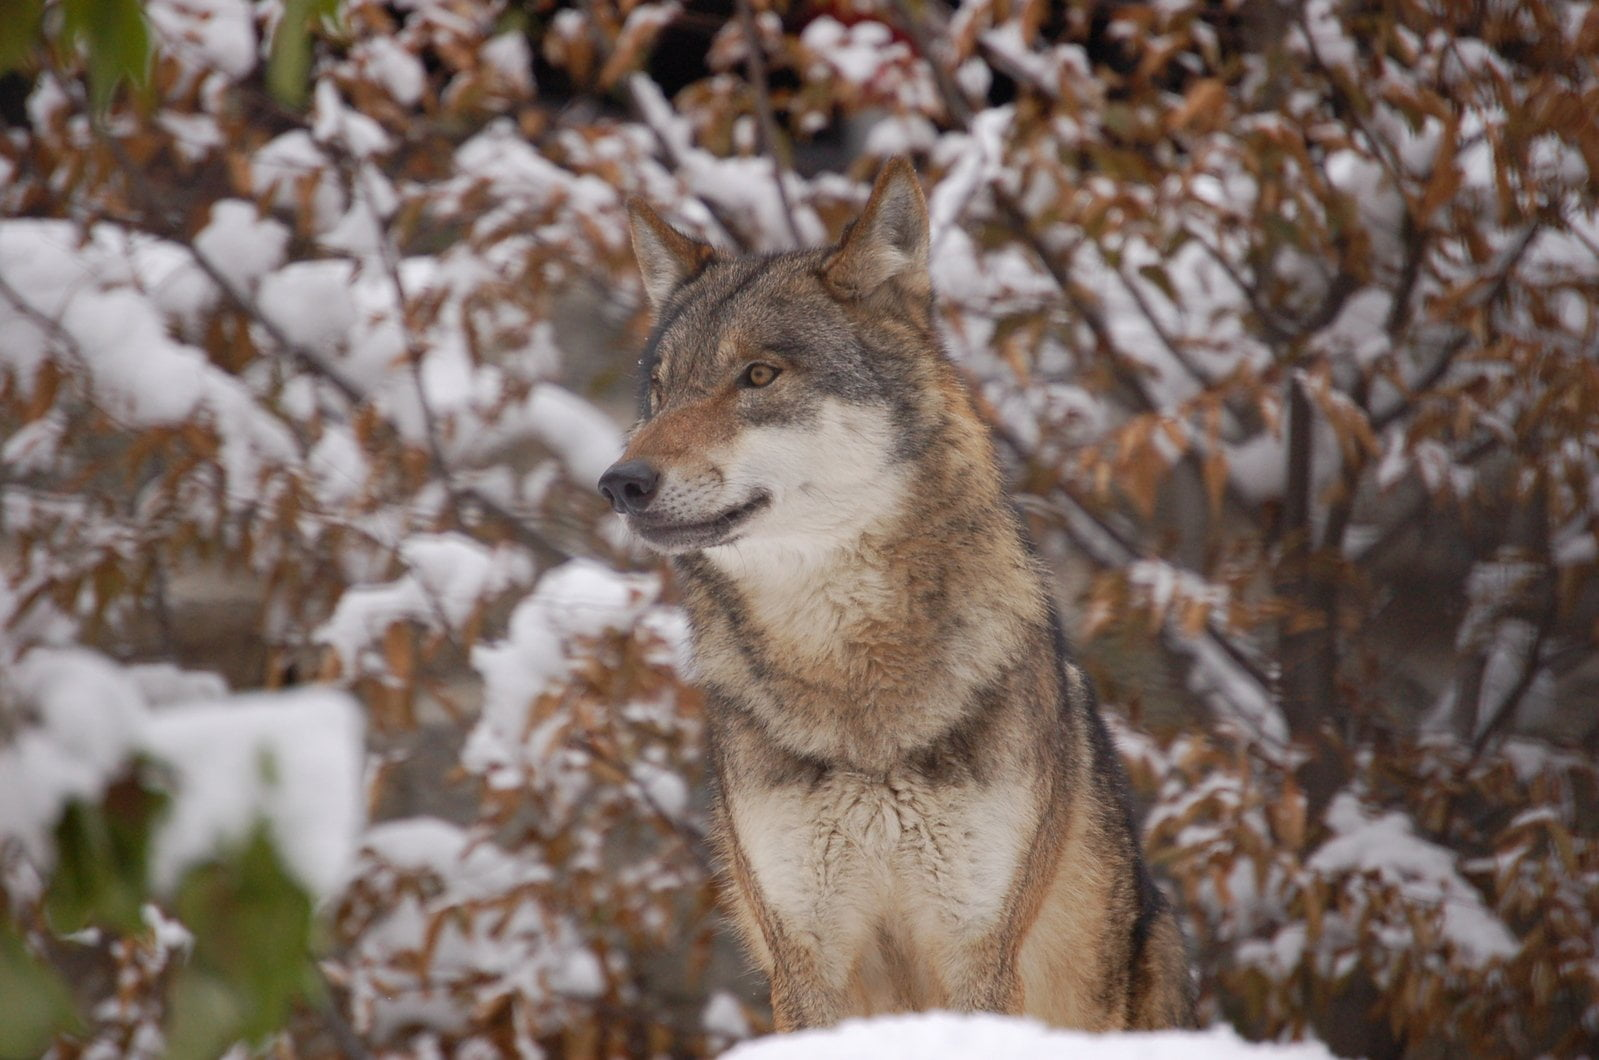 ECOS 40(6): Return of the wolf in Northwestern Europe - A case of spontaneous rewilding